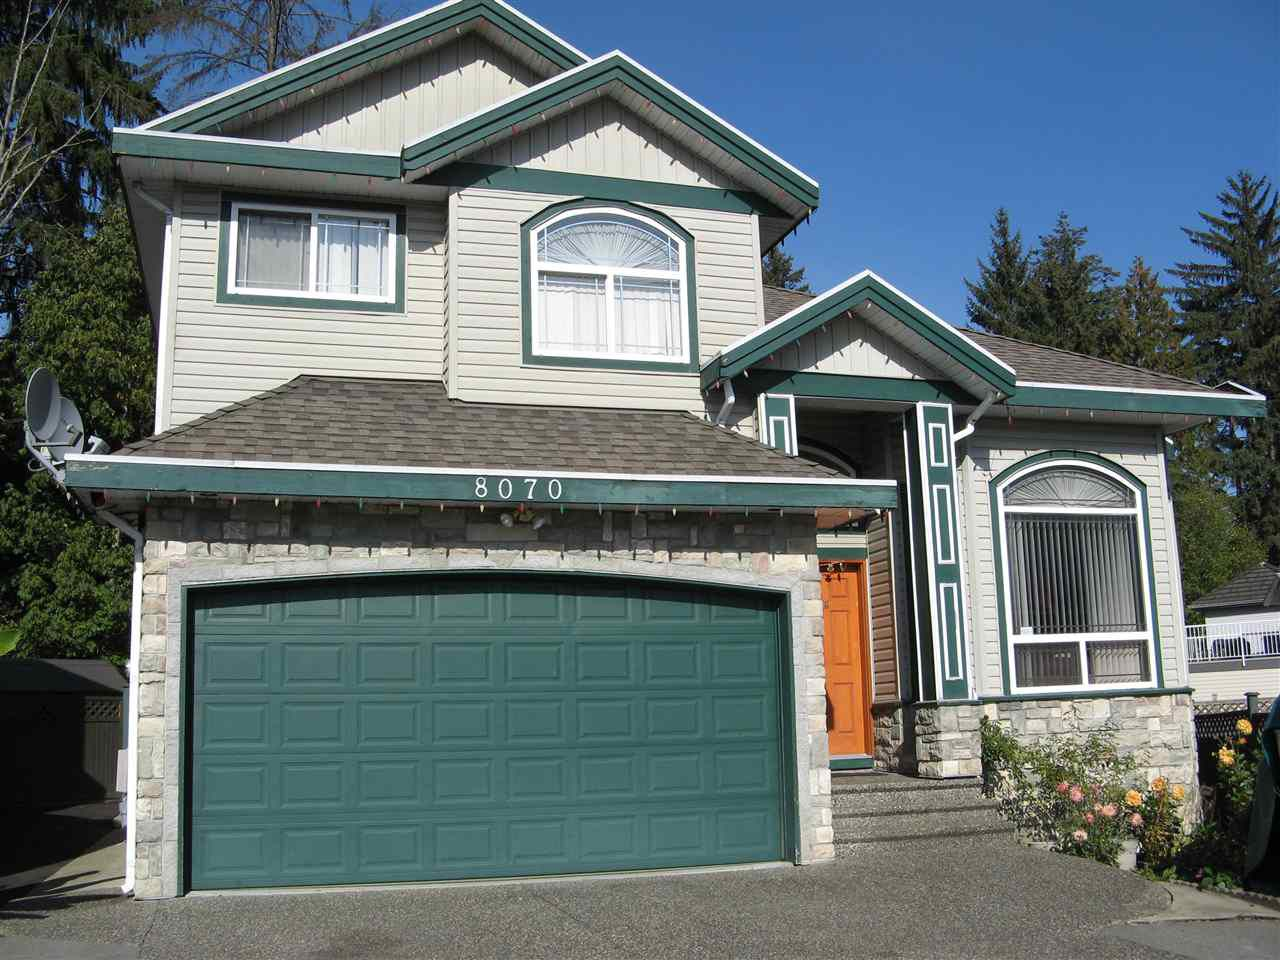 Main Photo: 8070 147 Street in Surrey: Bear Creek Green Timbers House for sale : MLS®# R2373859